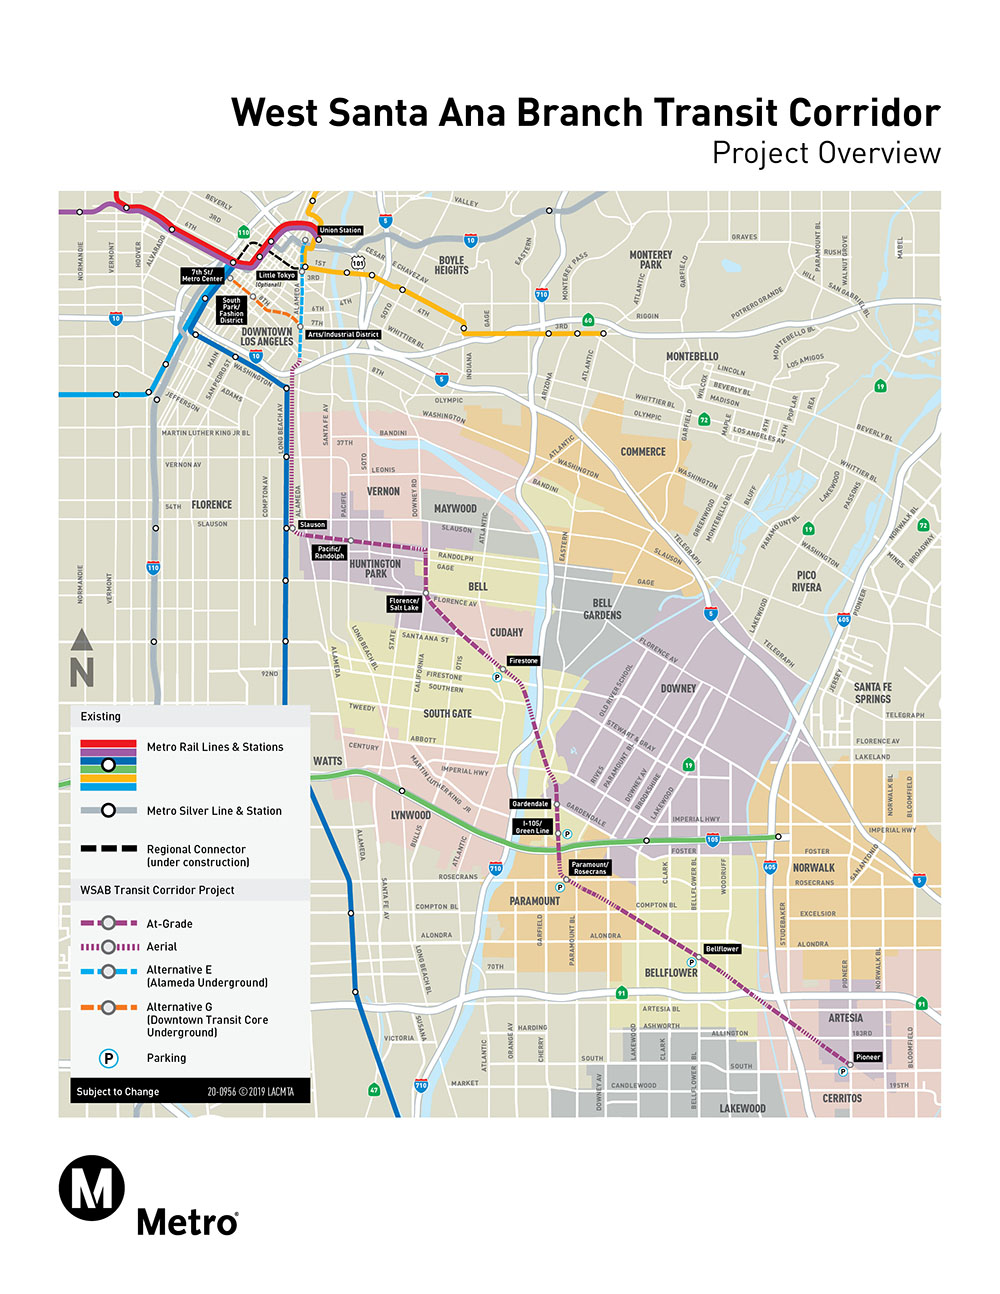 West Santa Ana Branch Transit Corridor_Project Overview Map